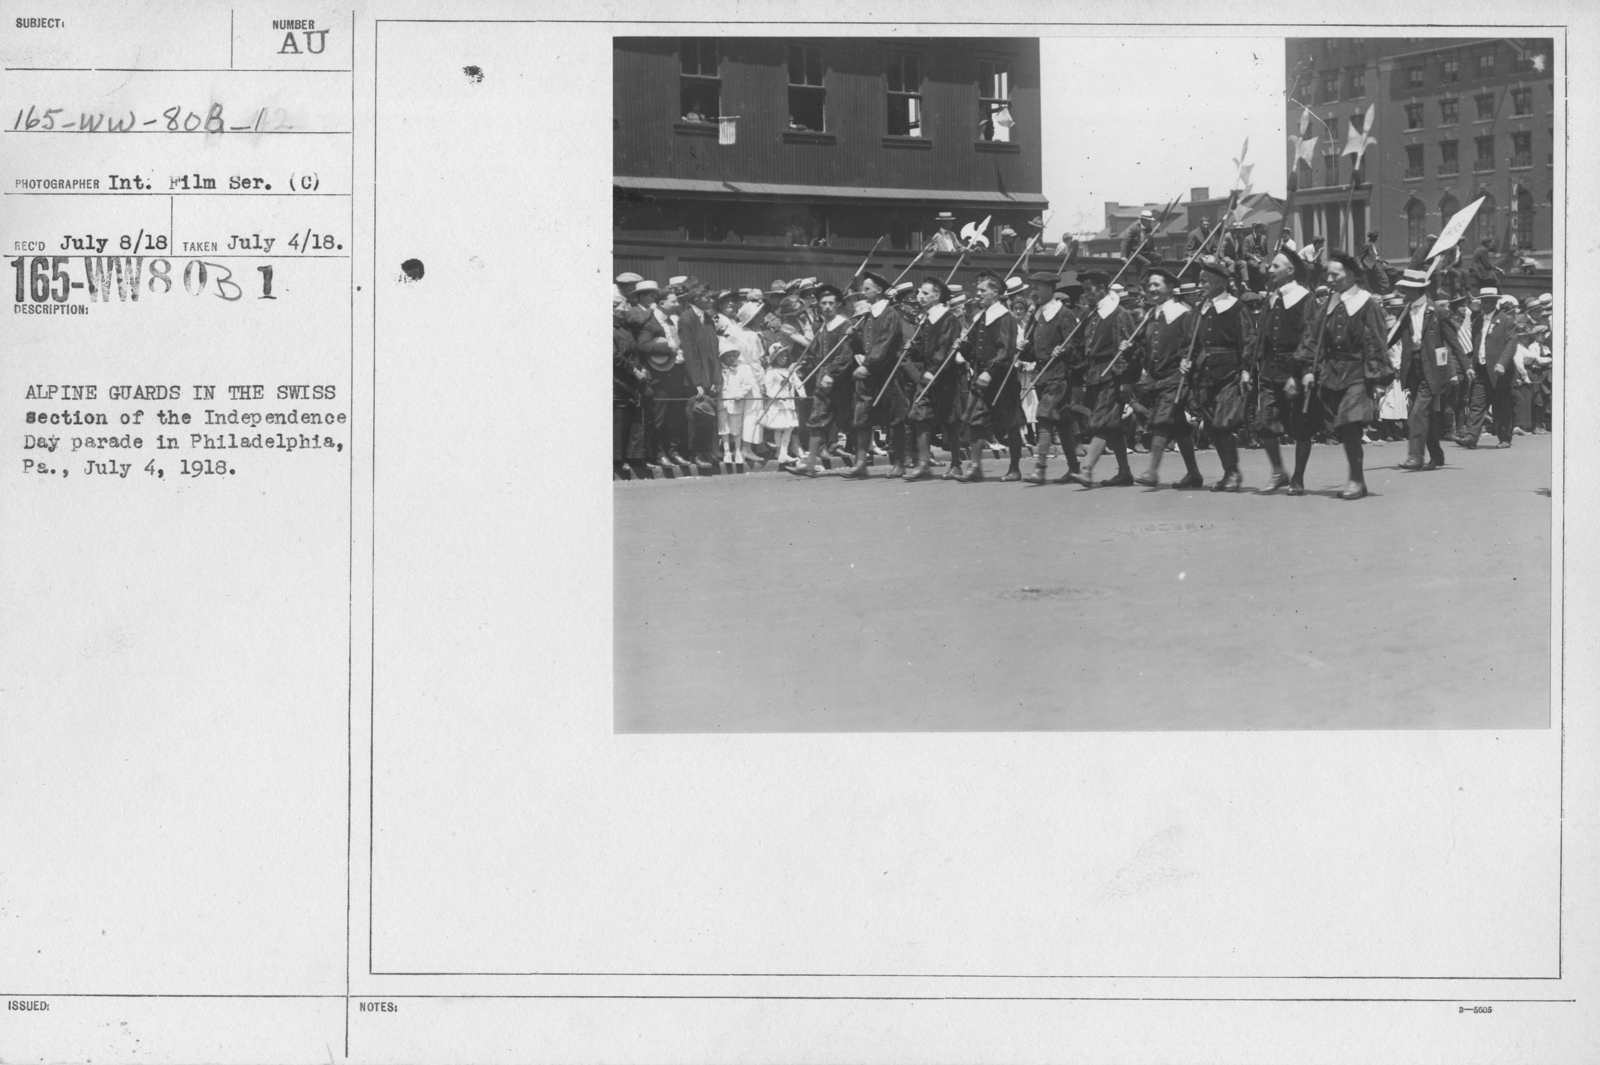 Ceremonies - Independence Day Parades (All States) - Alpine Guards in the Swiss section of the Independence Day parade in Philadelphia, PA., July 4, 1918